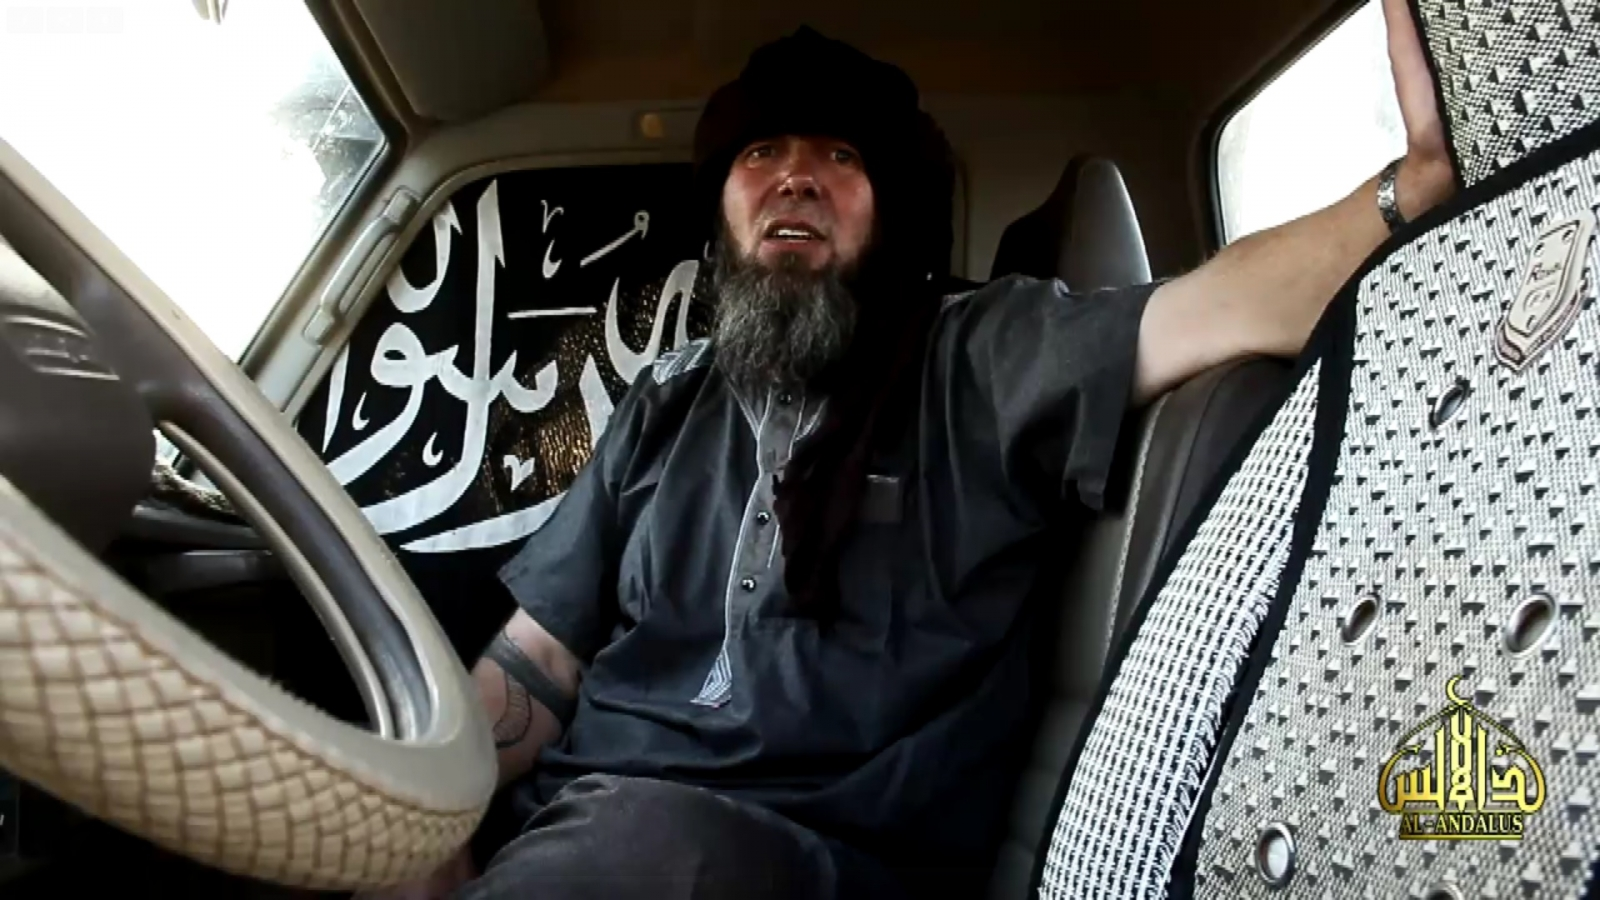 French hostage Serge Lazarevic AQIM al-qaeda Video